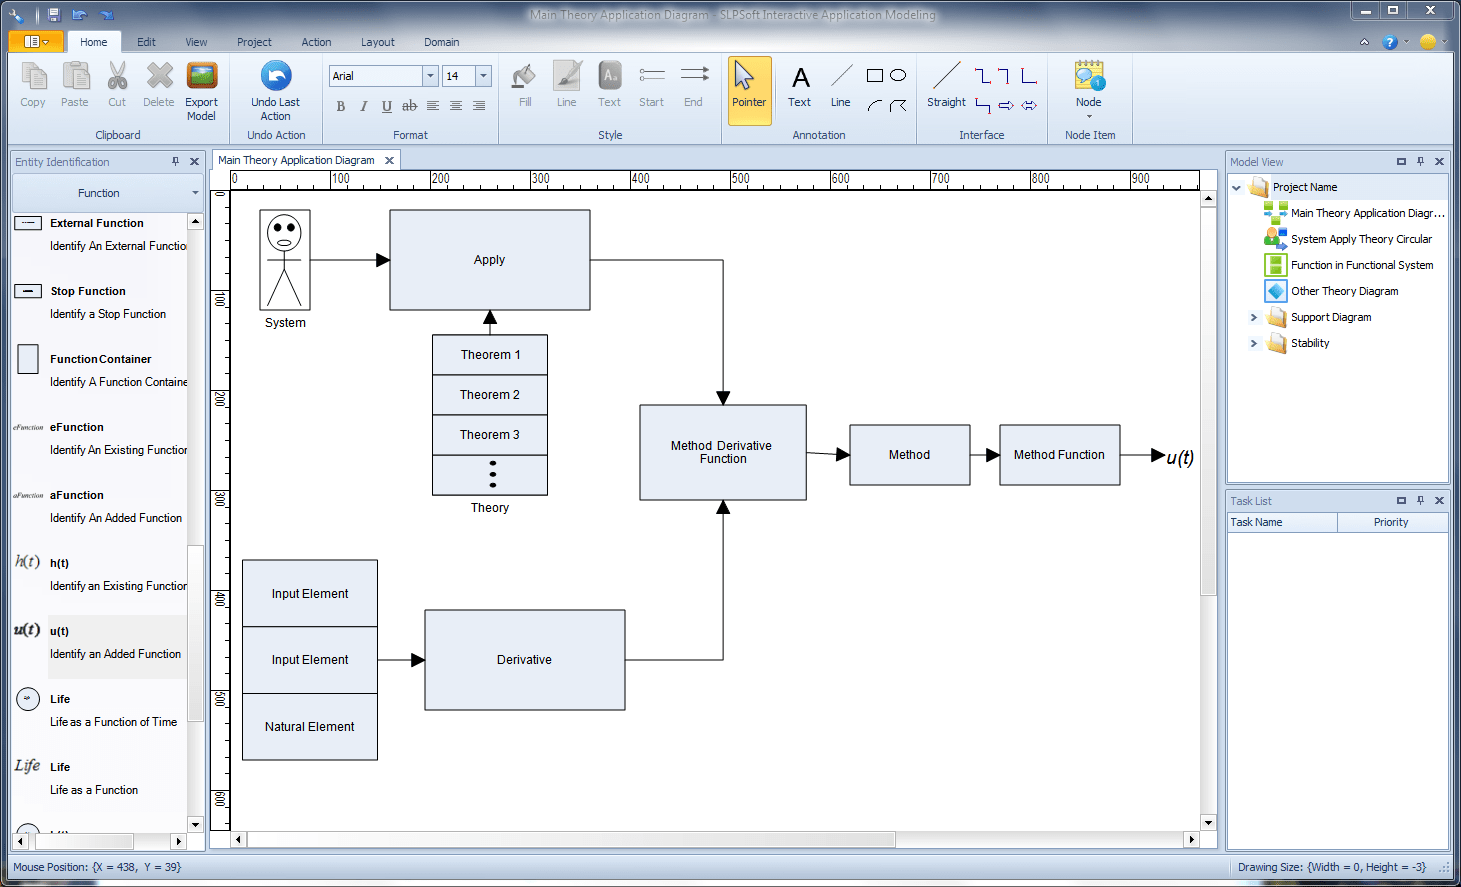 SLPSoft Interactive Application Modeling